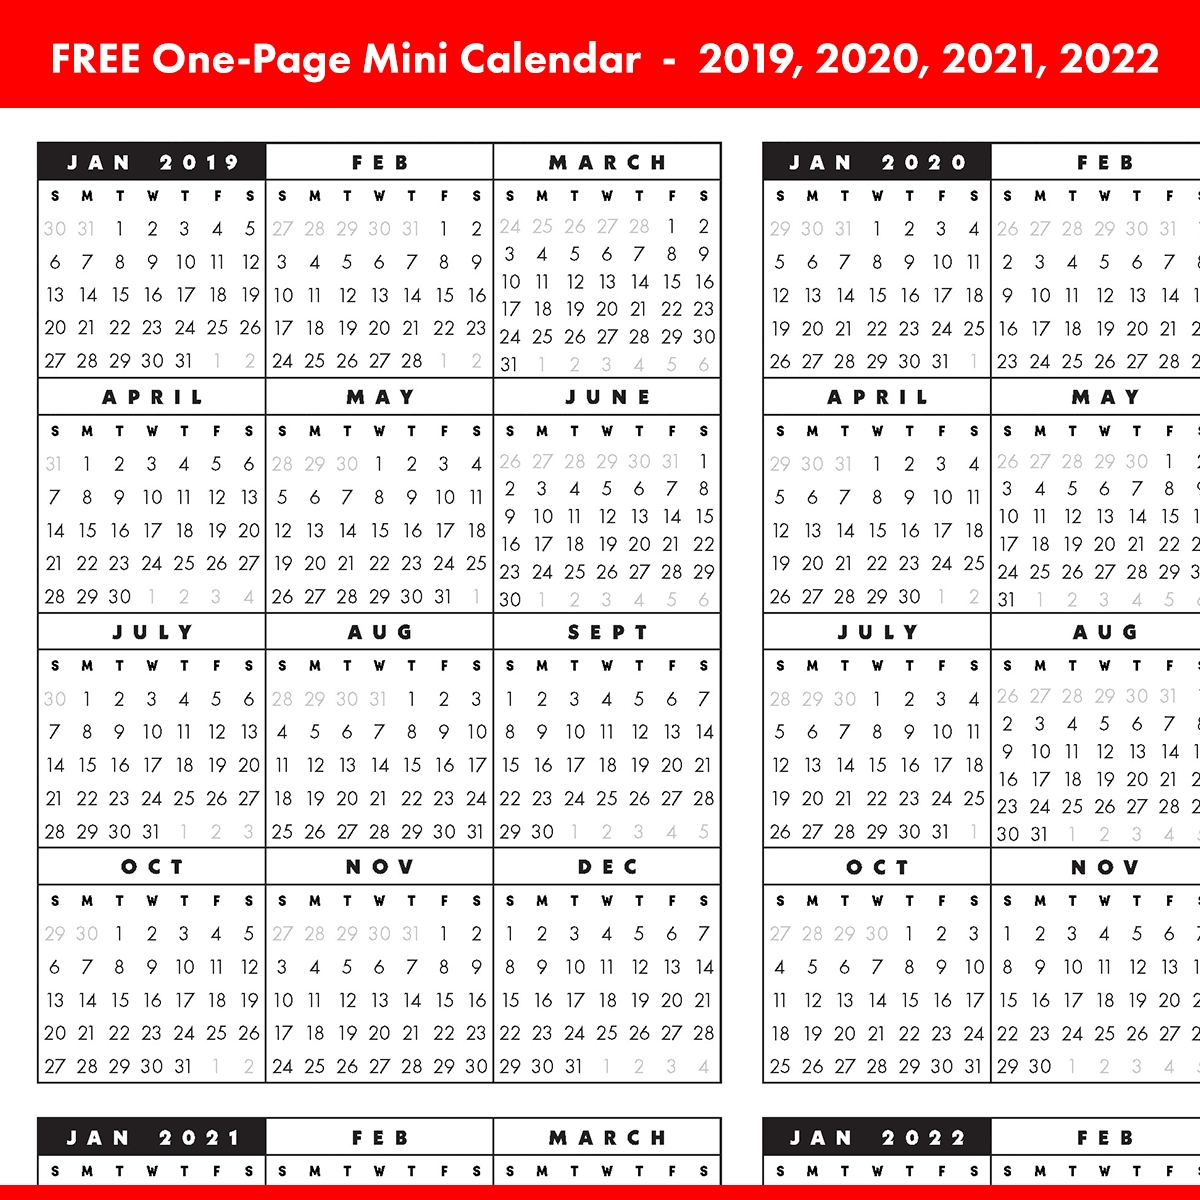 Free Full-Year, Single-Page 2019, 2020, 2021, 2022 At A in May Calendars For 2019 2020 2021 And 2022